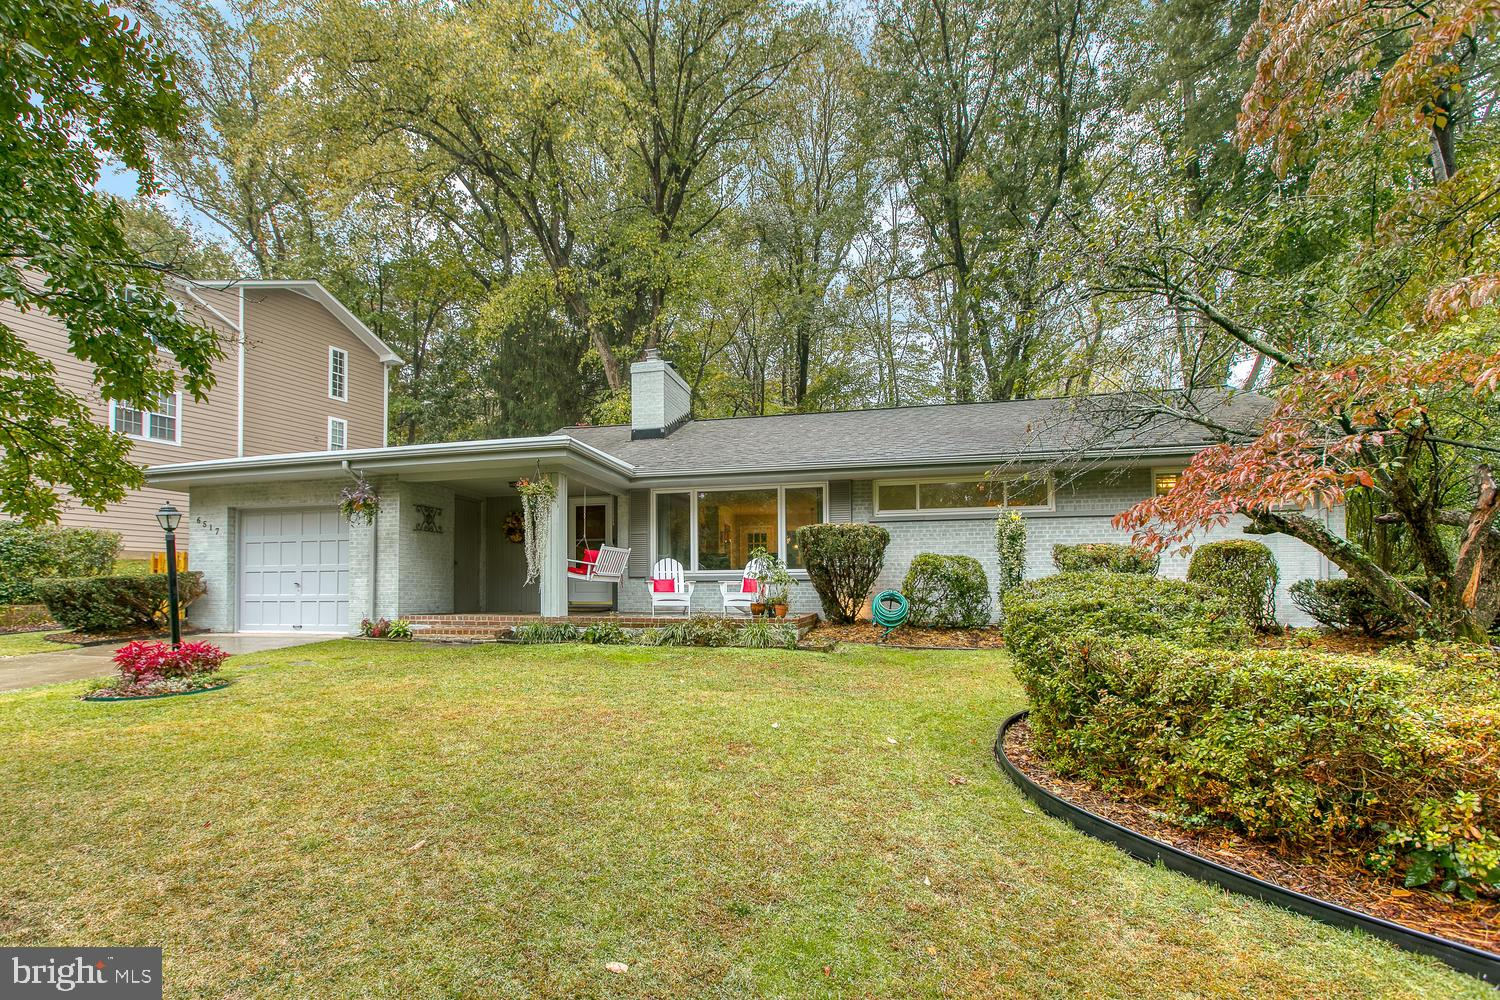 6517 LAKEVIEW DRIVE, FALLS CHURCH, VA 22041